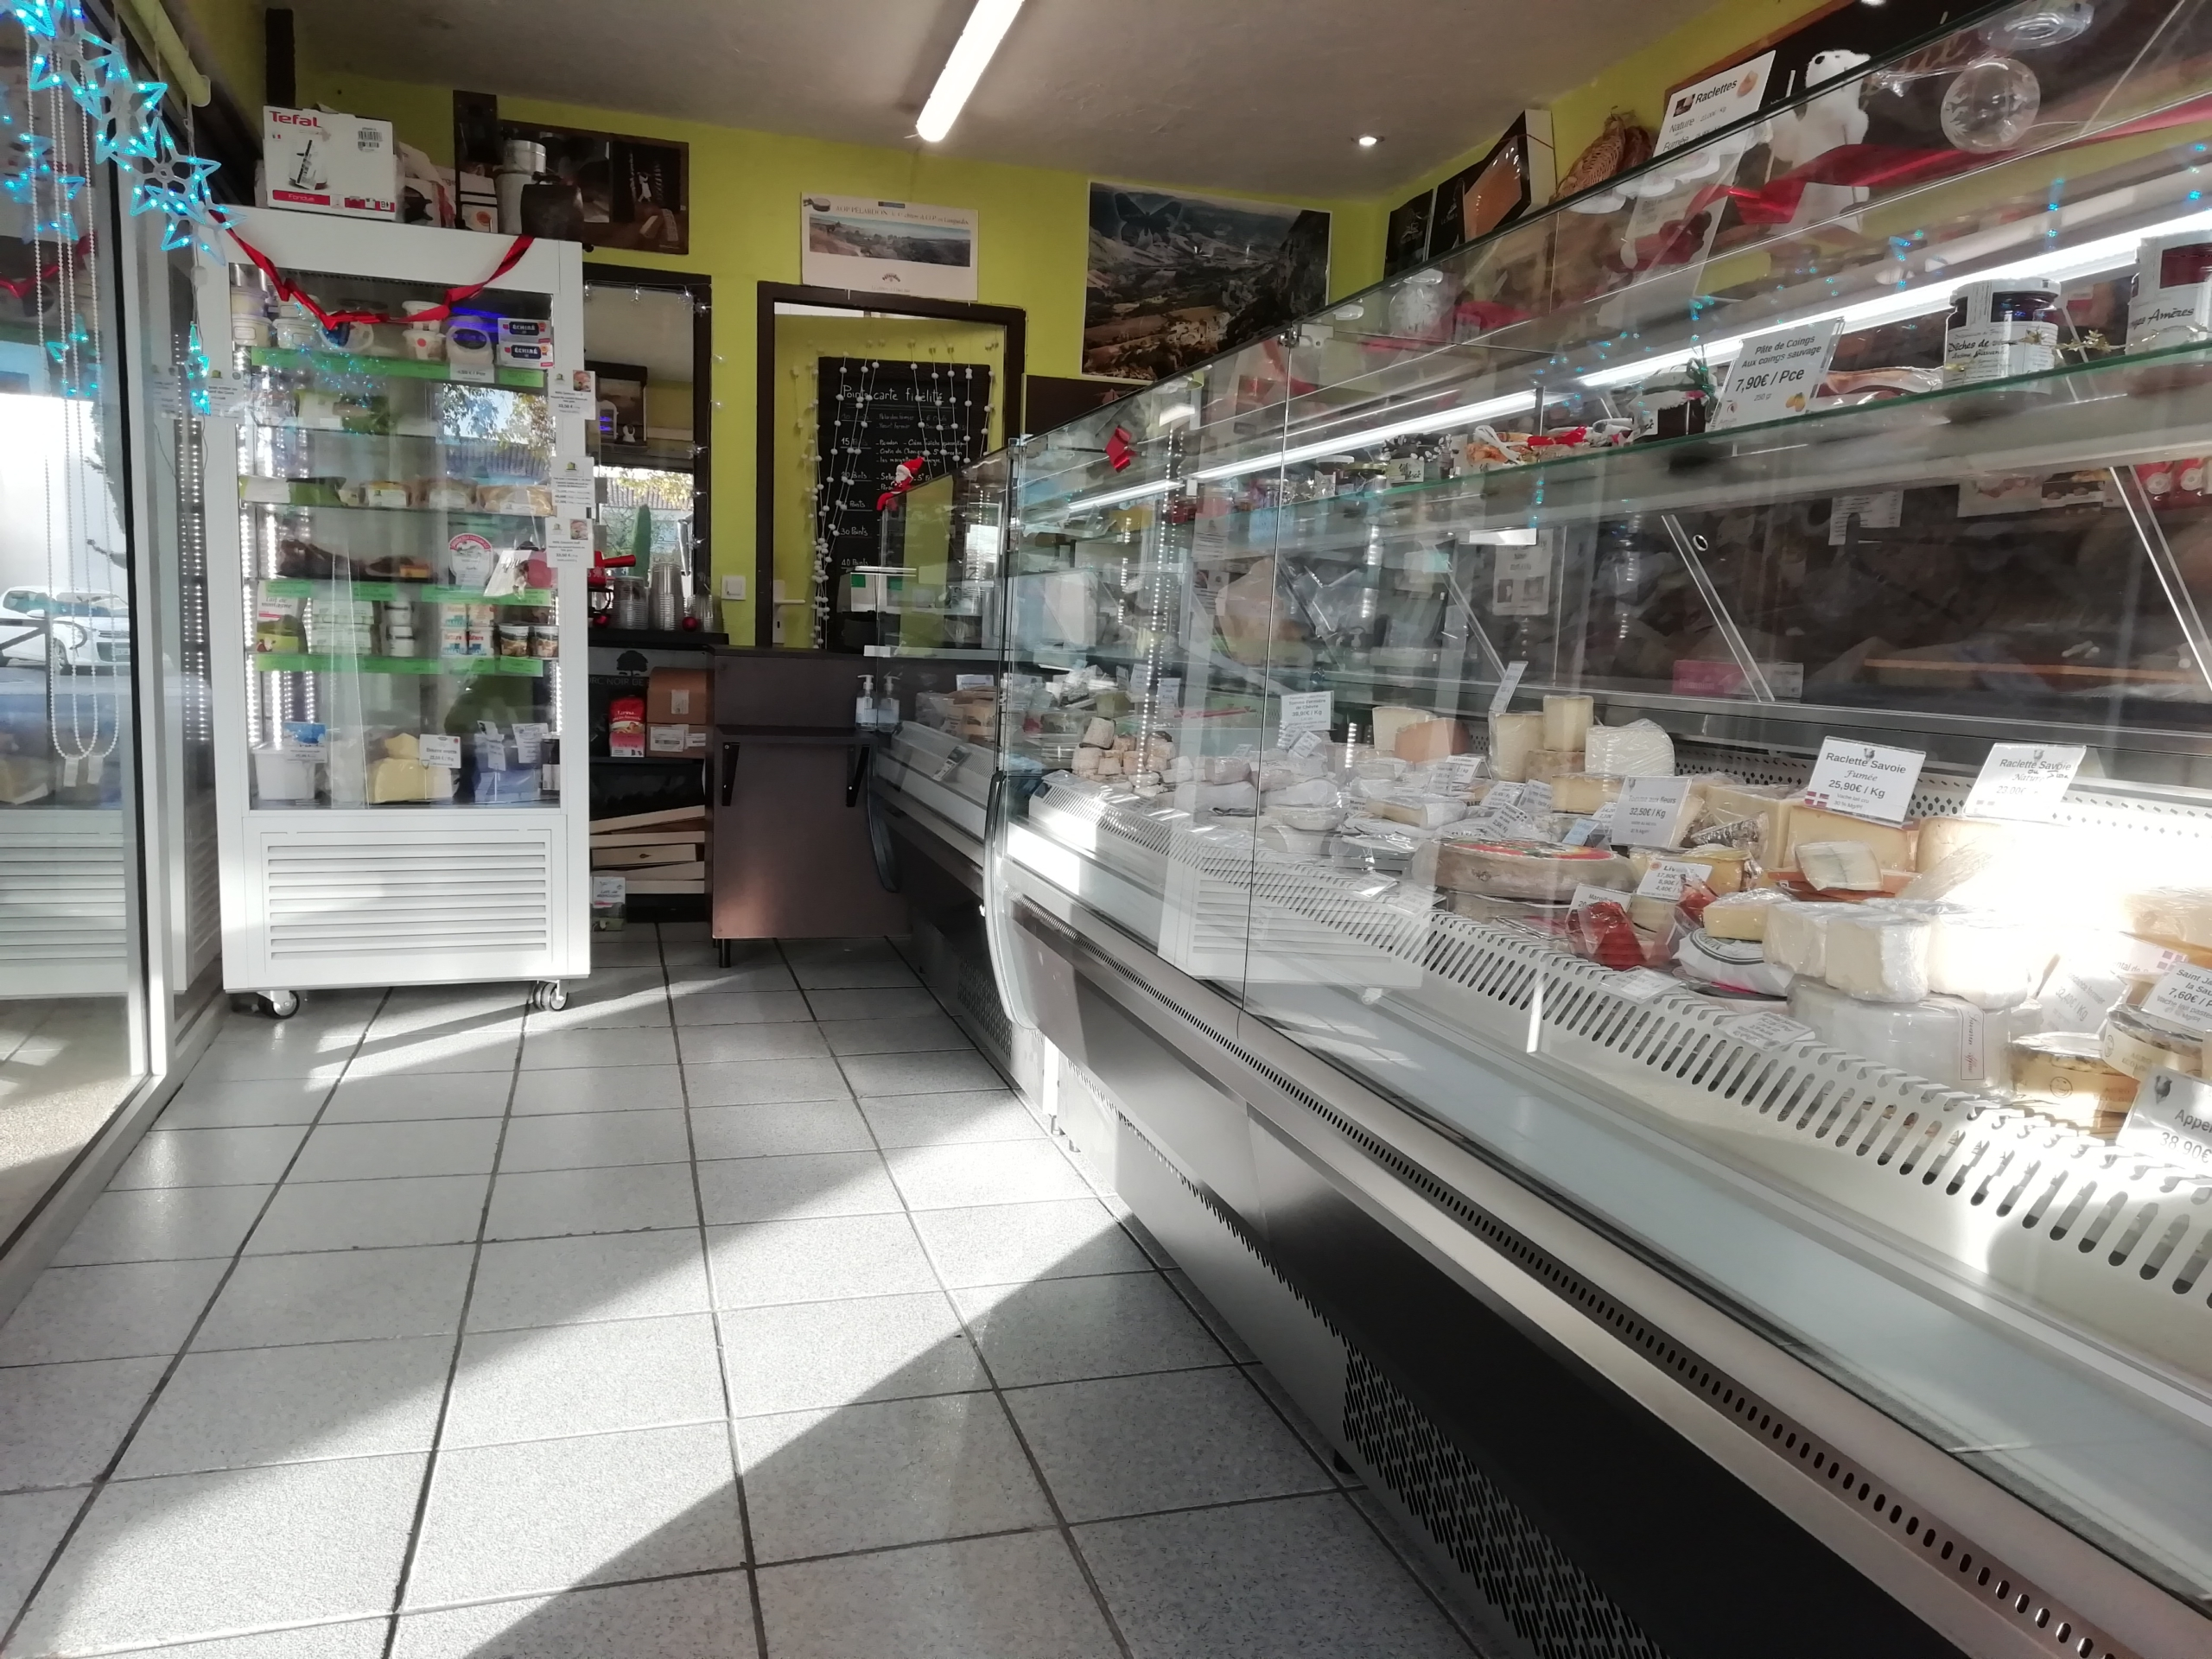 NOUVELLE INSTALLATION VITRINES FROMAGERIE